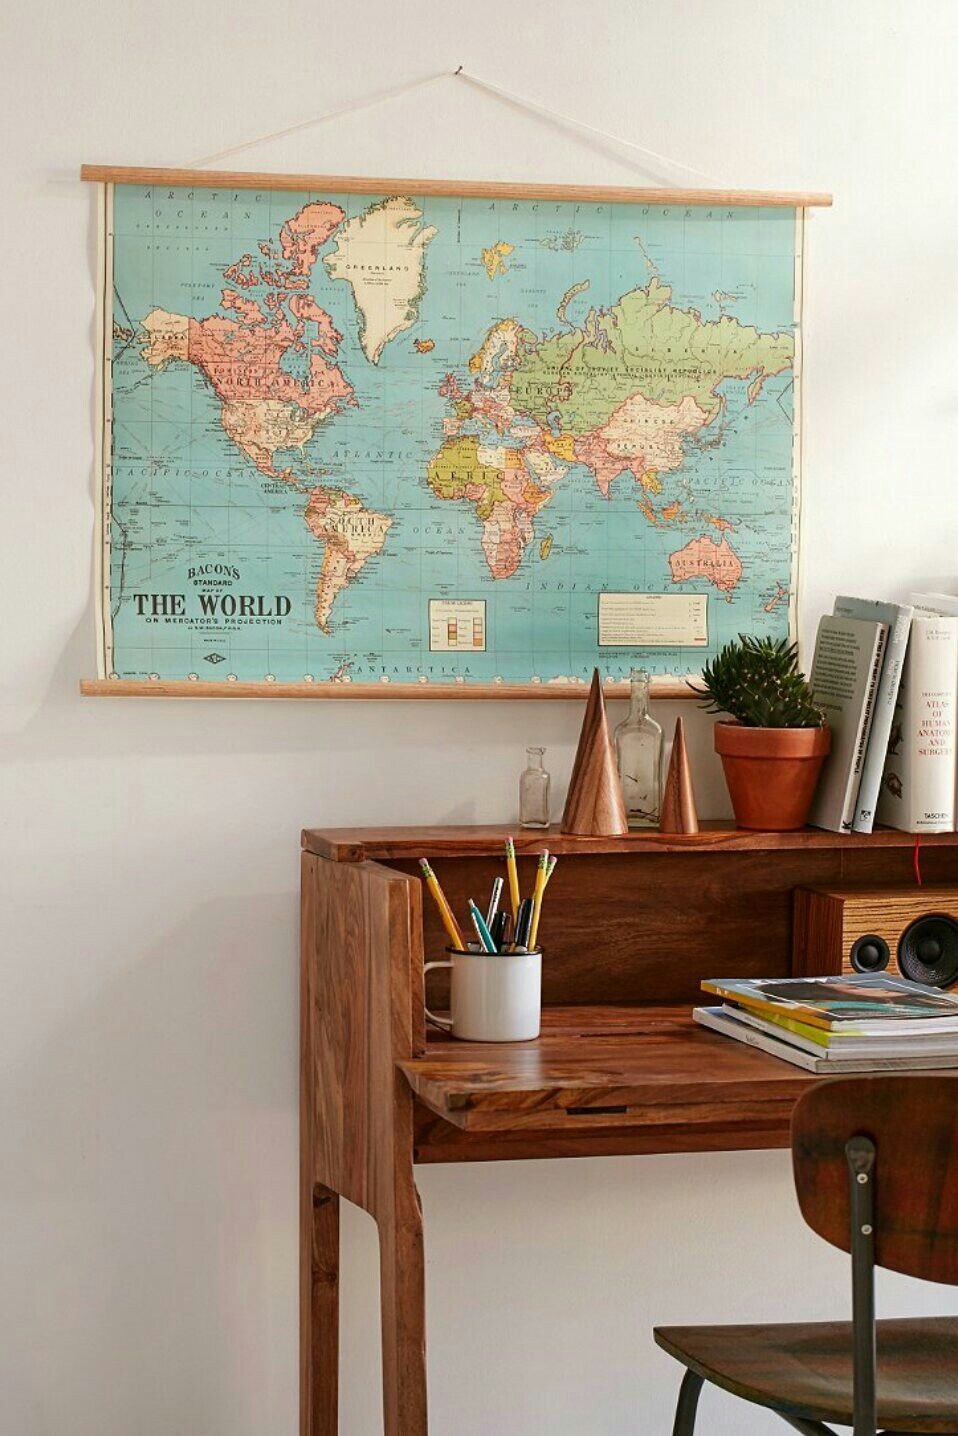 Pin by surftumblrstheticyle on surfer tumblr boys bedroom vintage teen desk study room hanging world map art print gumiabroncs Image collections